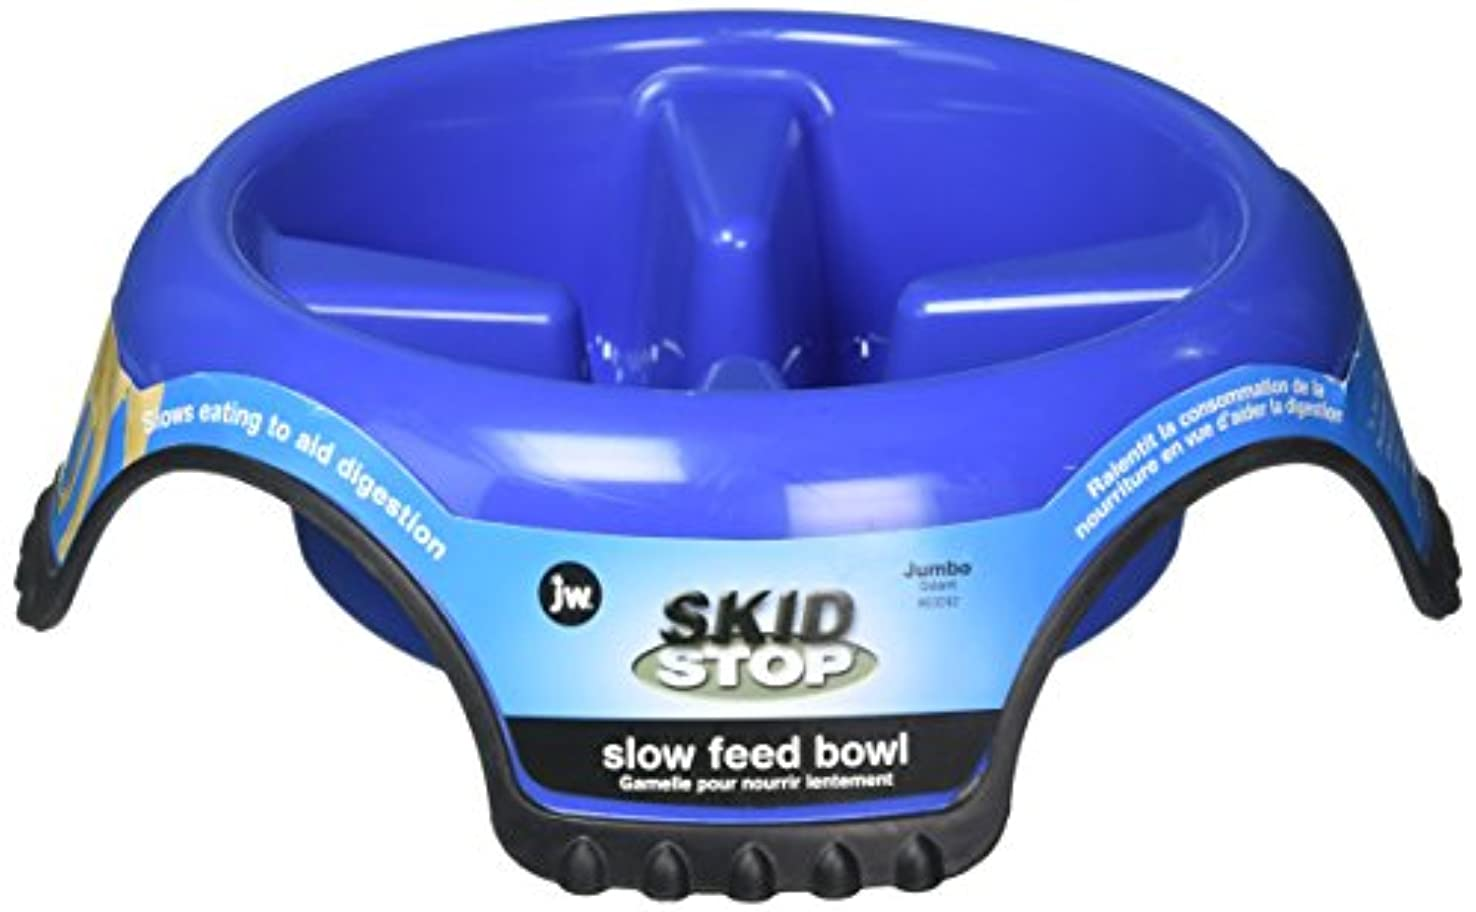 JW PET SLOW FEED SKID STOP Dog Bowl - Slows Eating Helps Digestion JUMBO